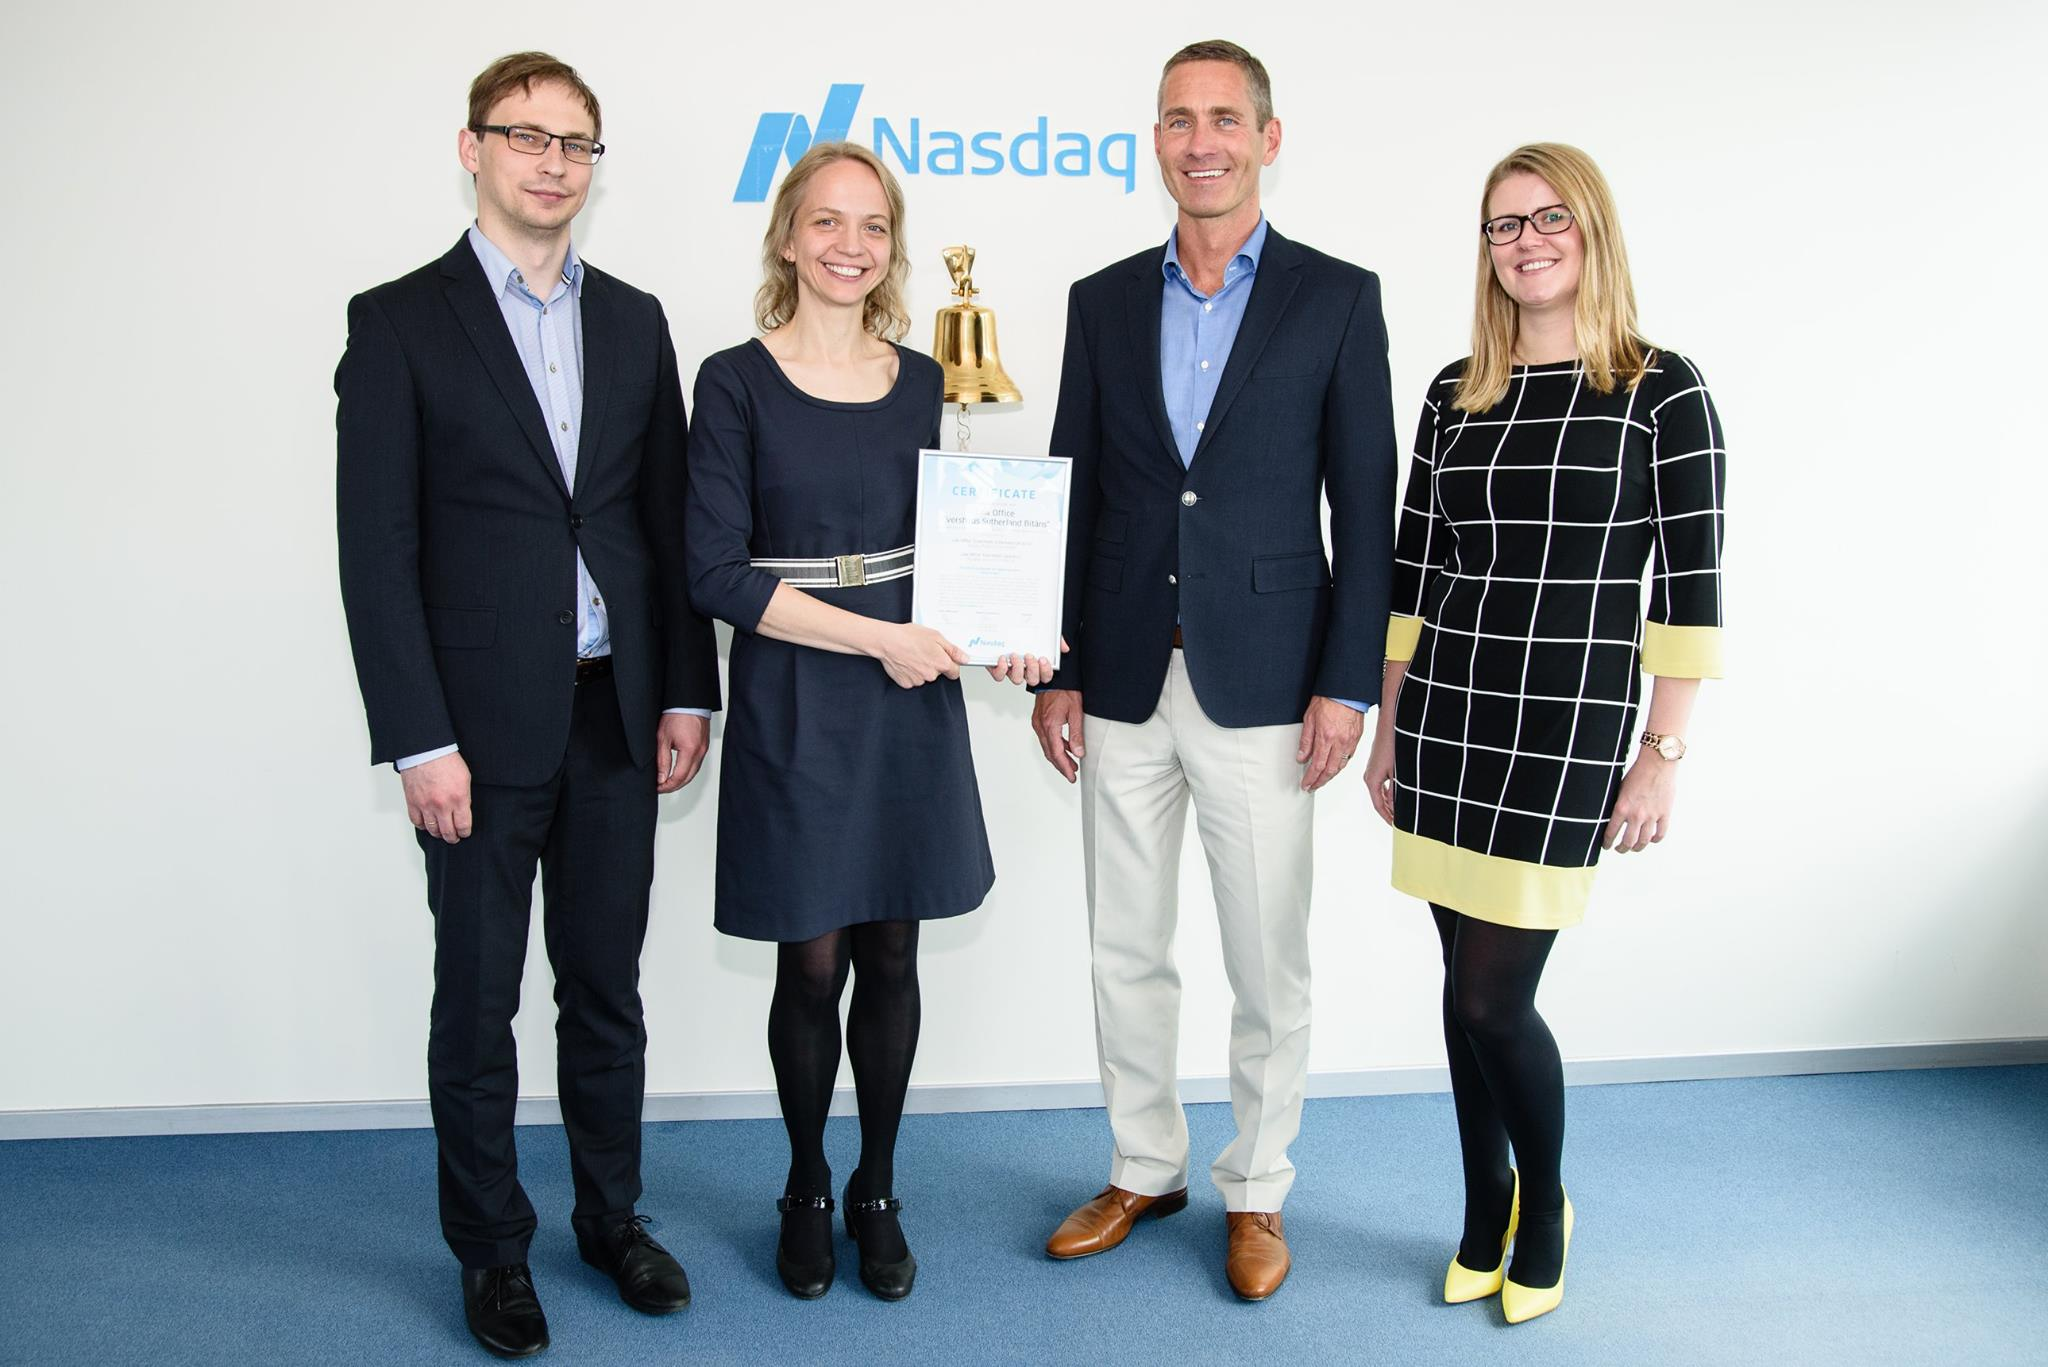 Eversheds Sutherland Baltic Law Offices are Nasdaq Baltic First North Certified Advisors